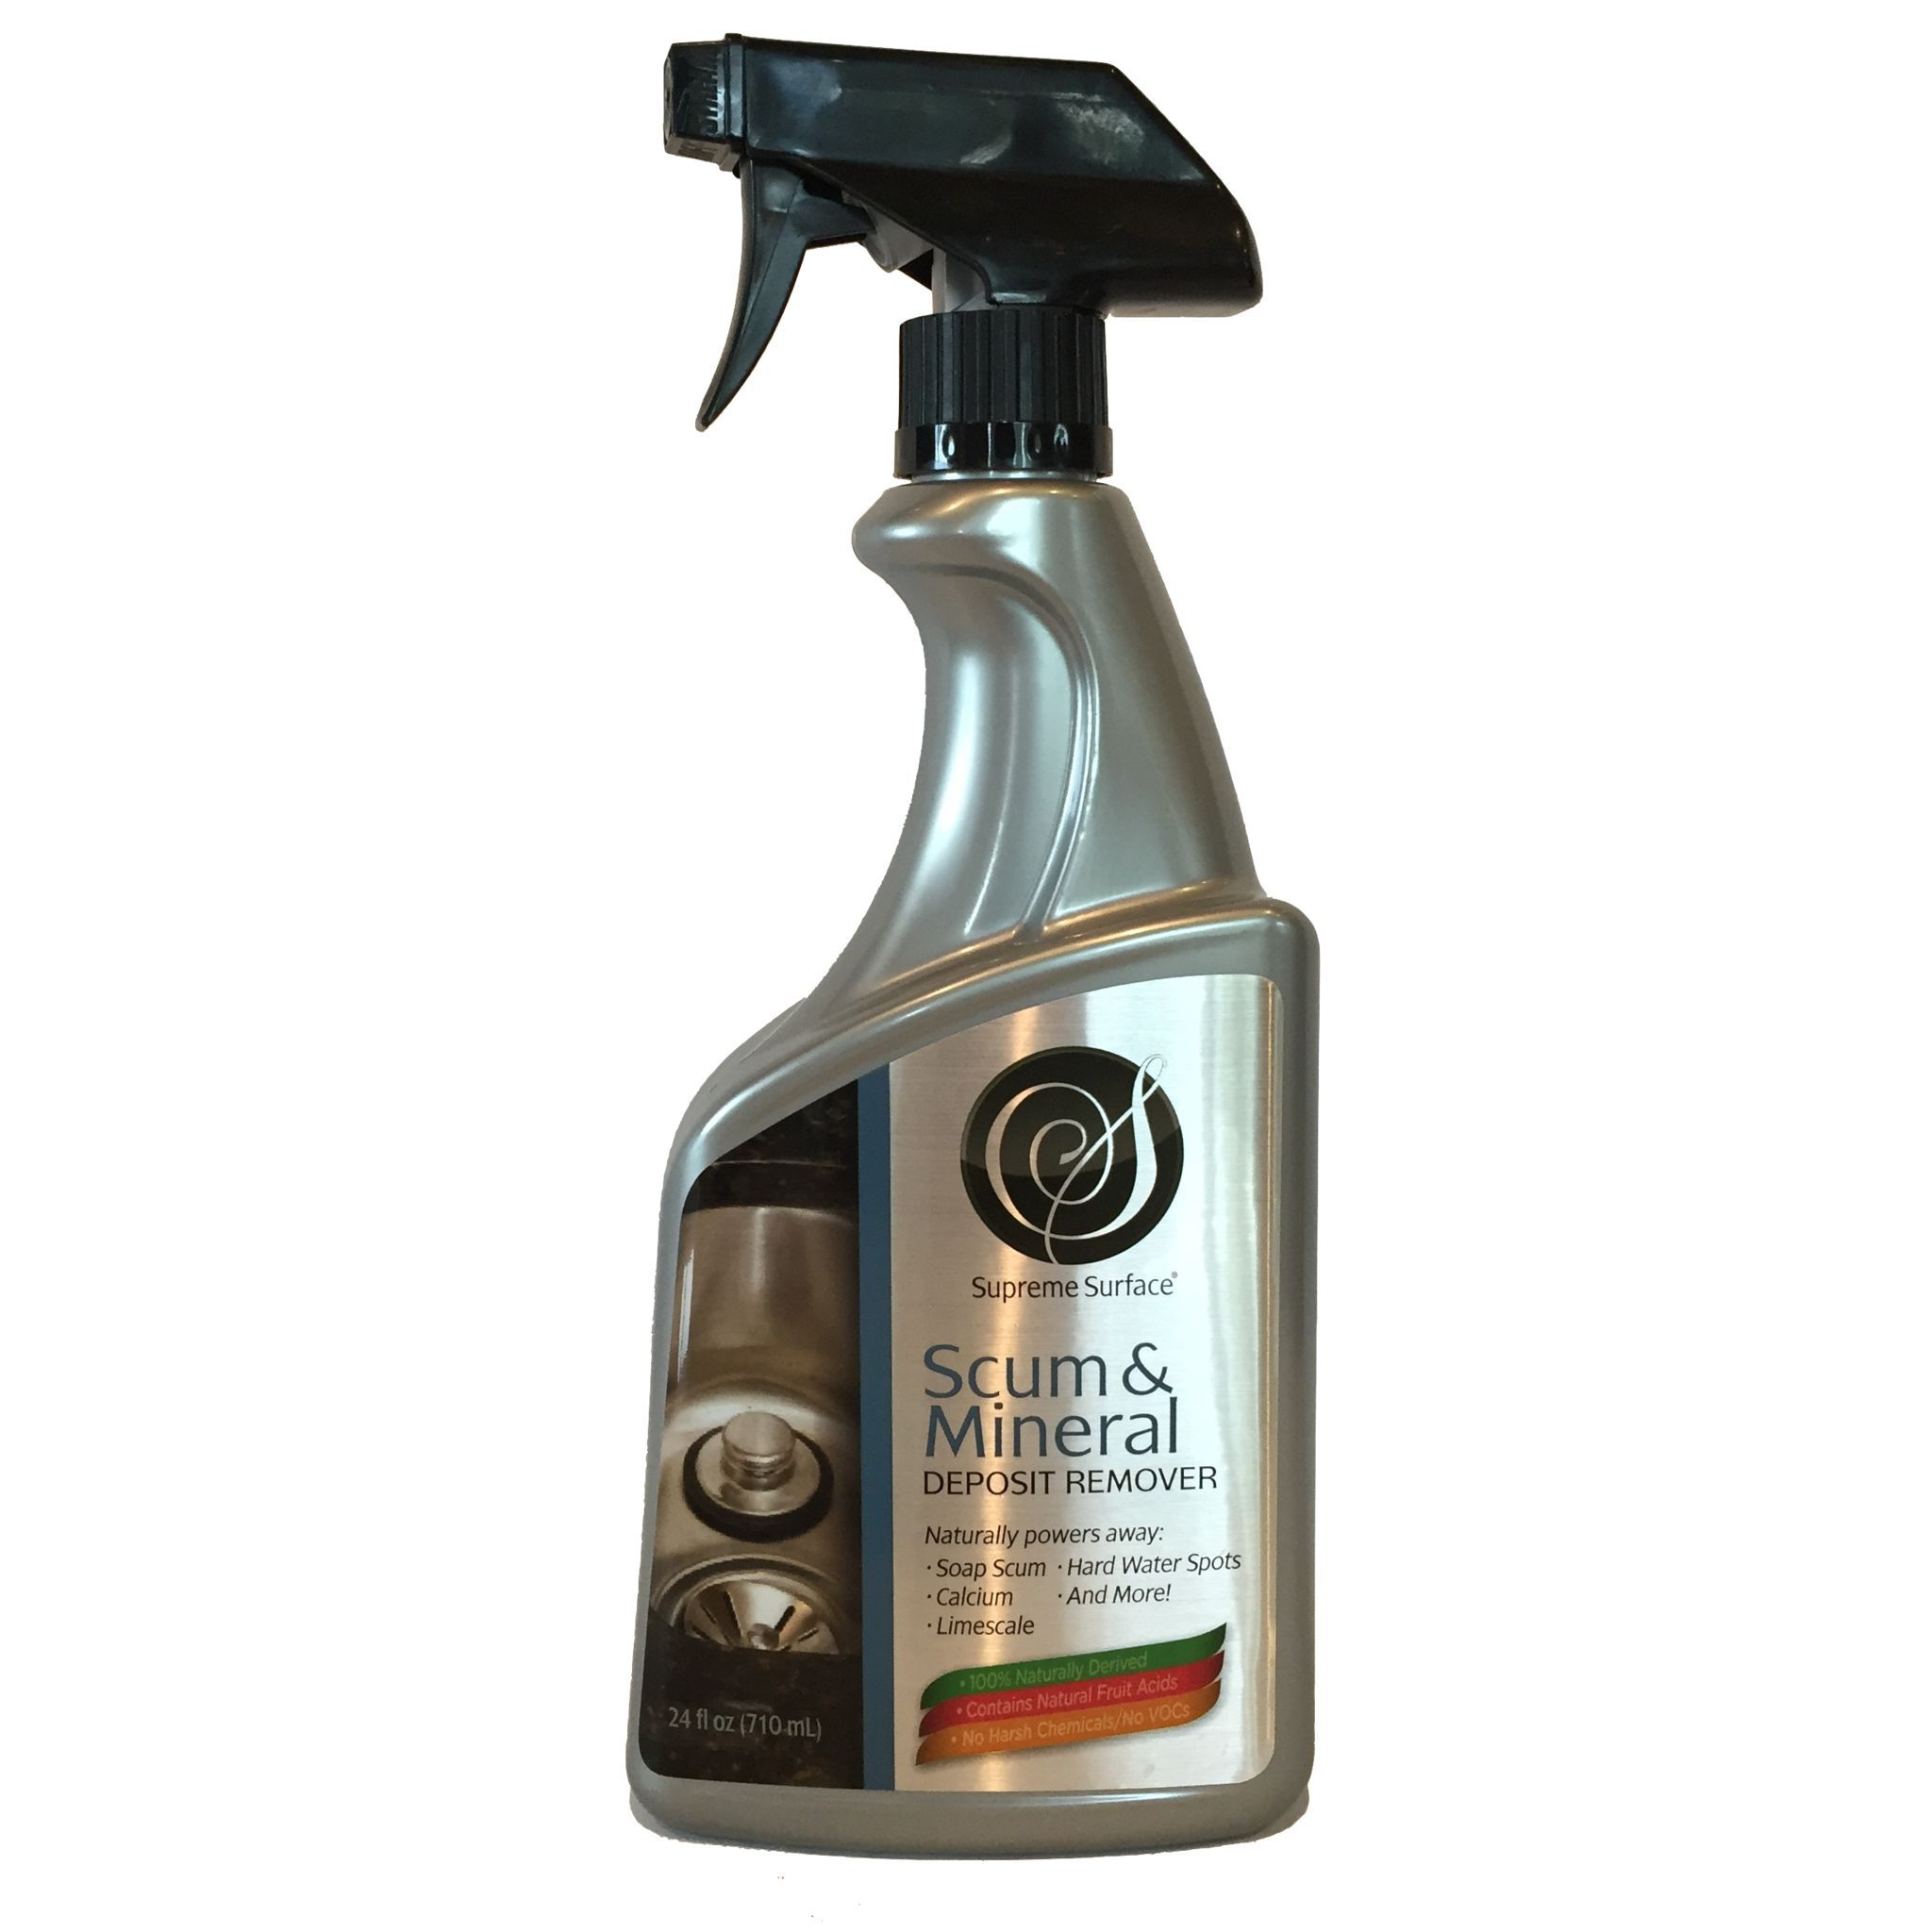 Scum and Mineral Deposit Remover by Supreme Surface®